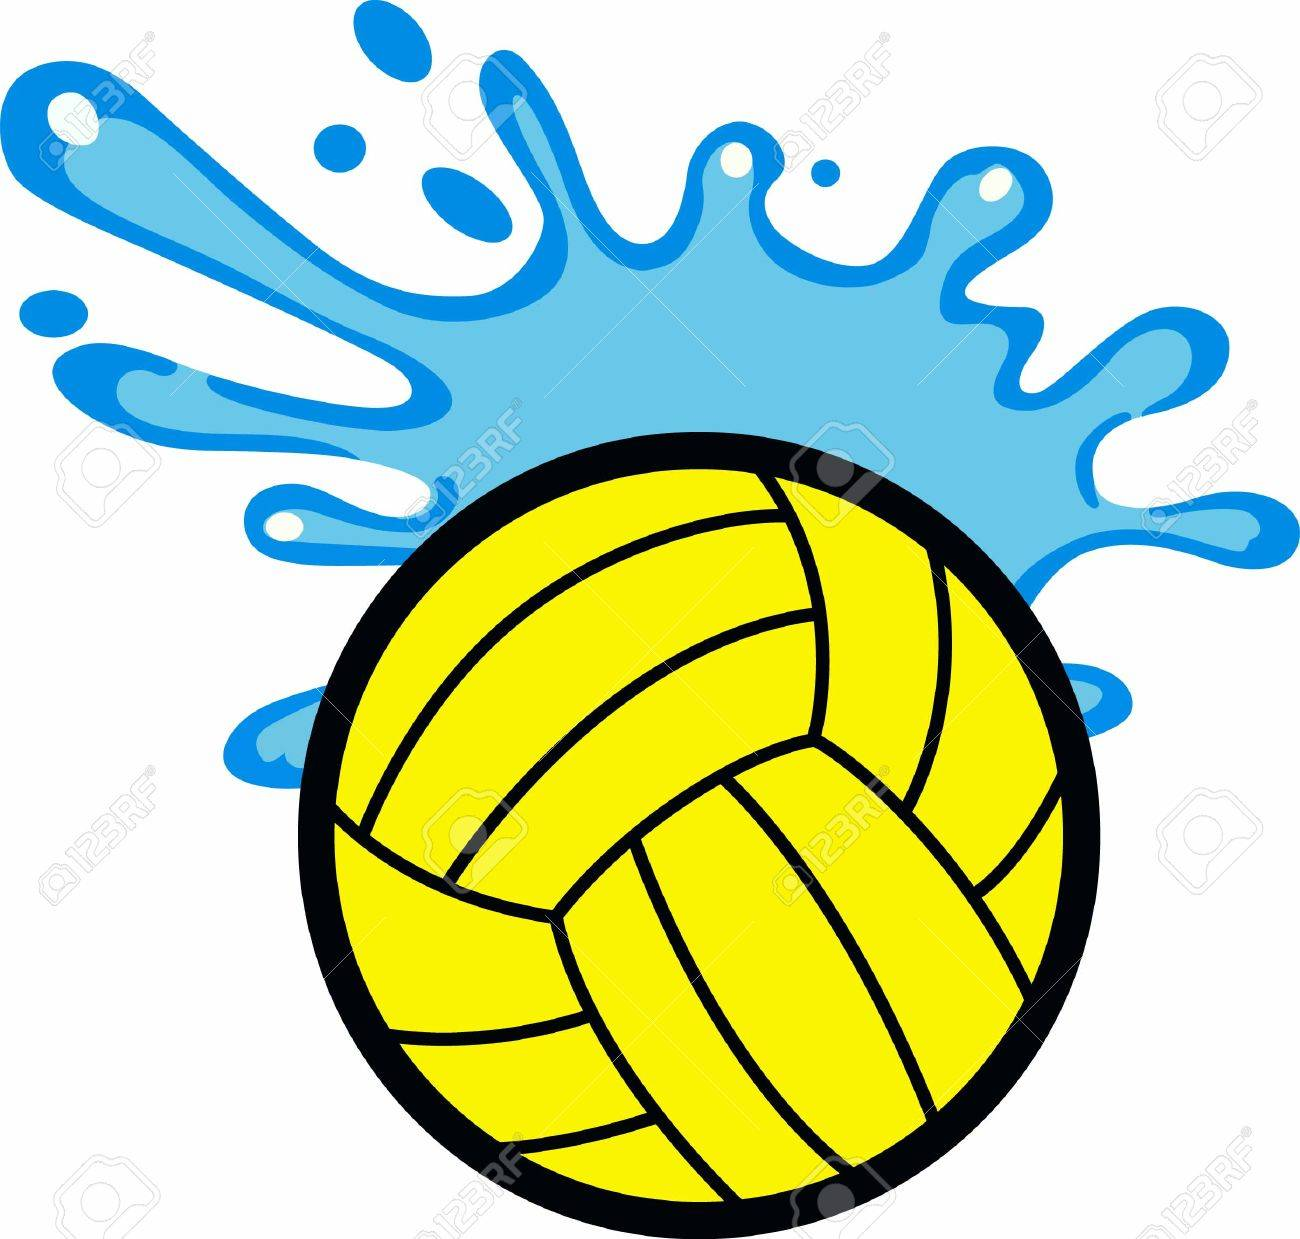 Water polo players will like this splashing ball..